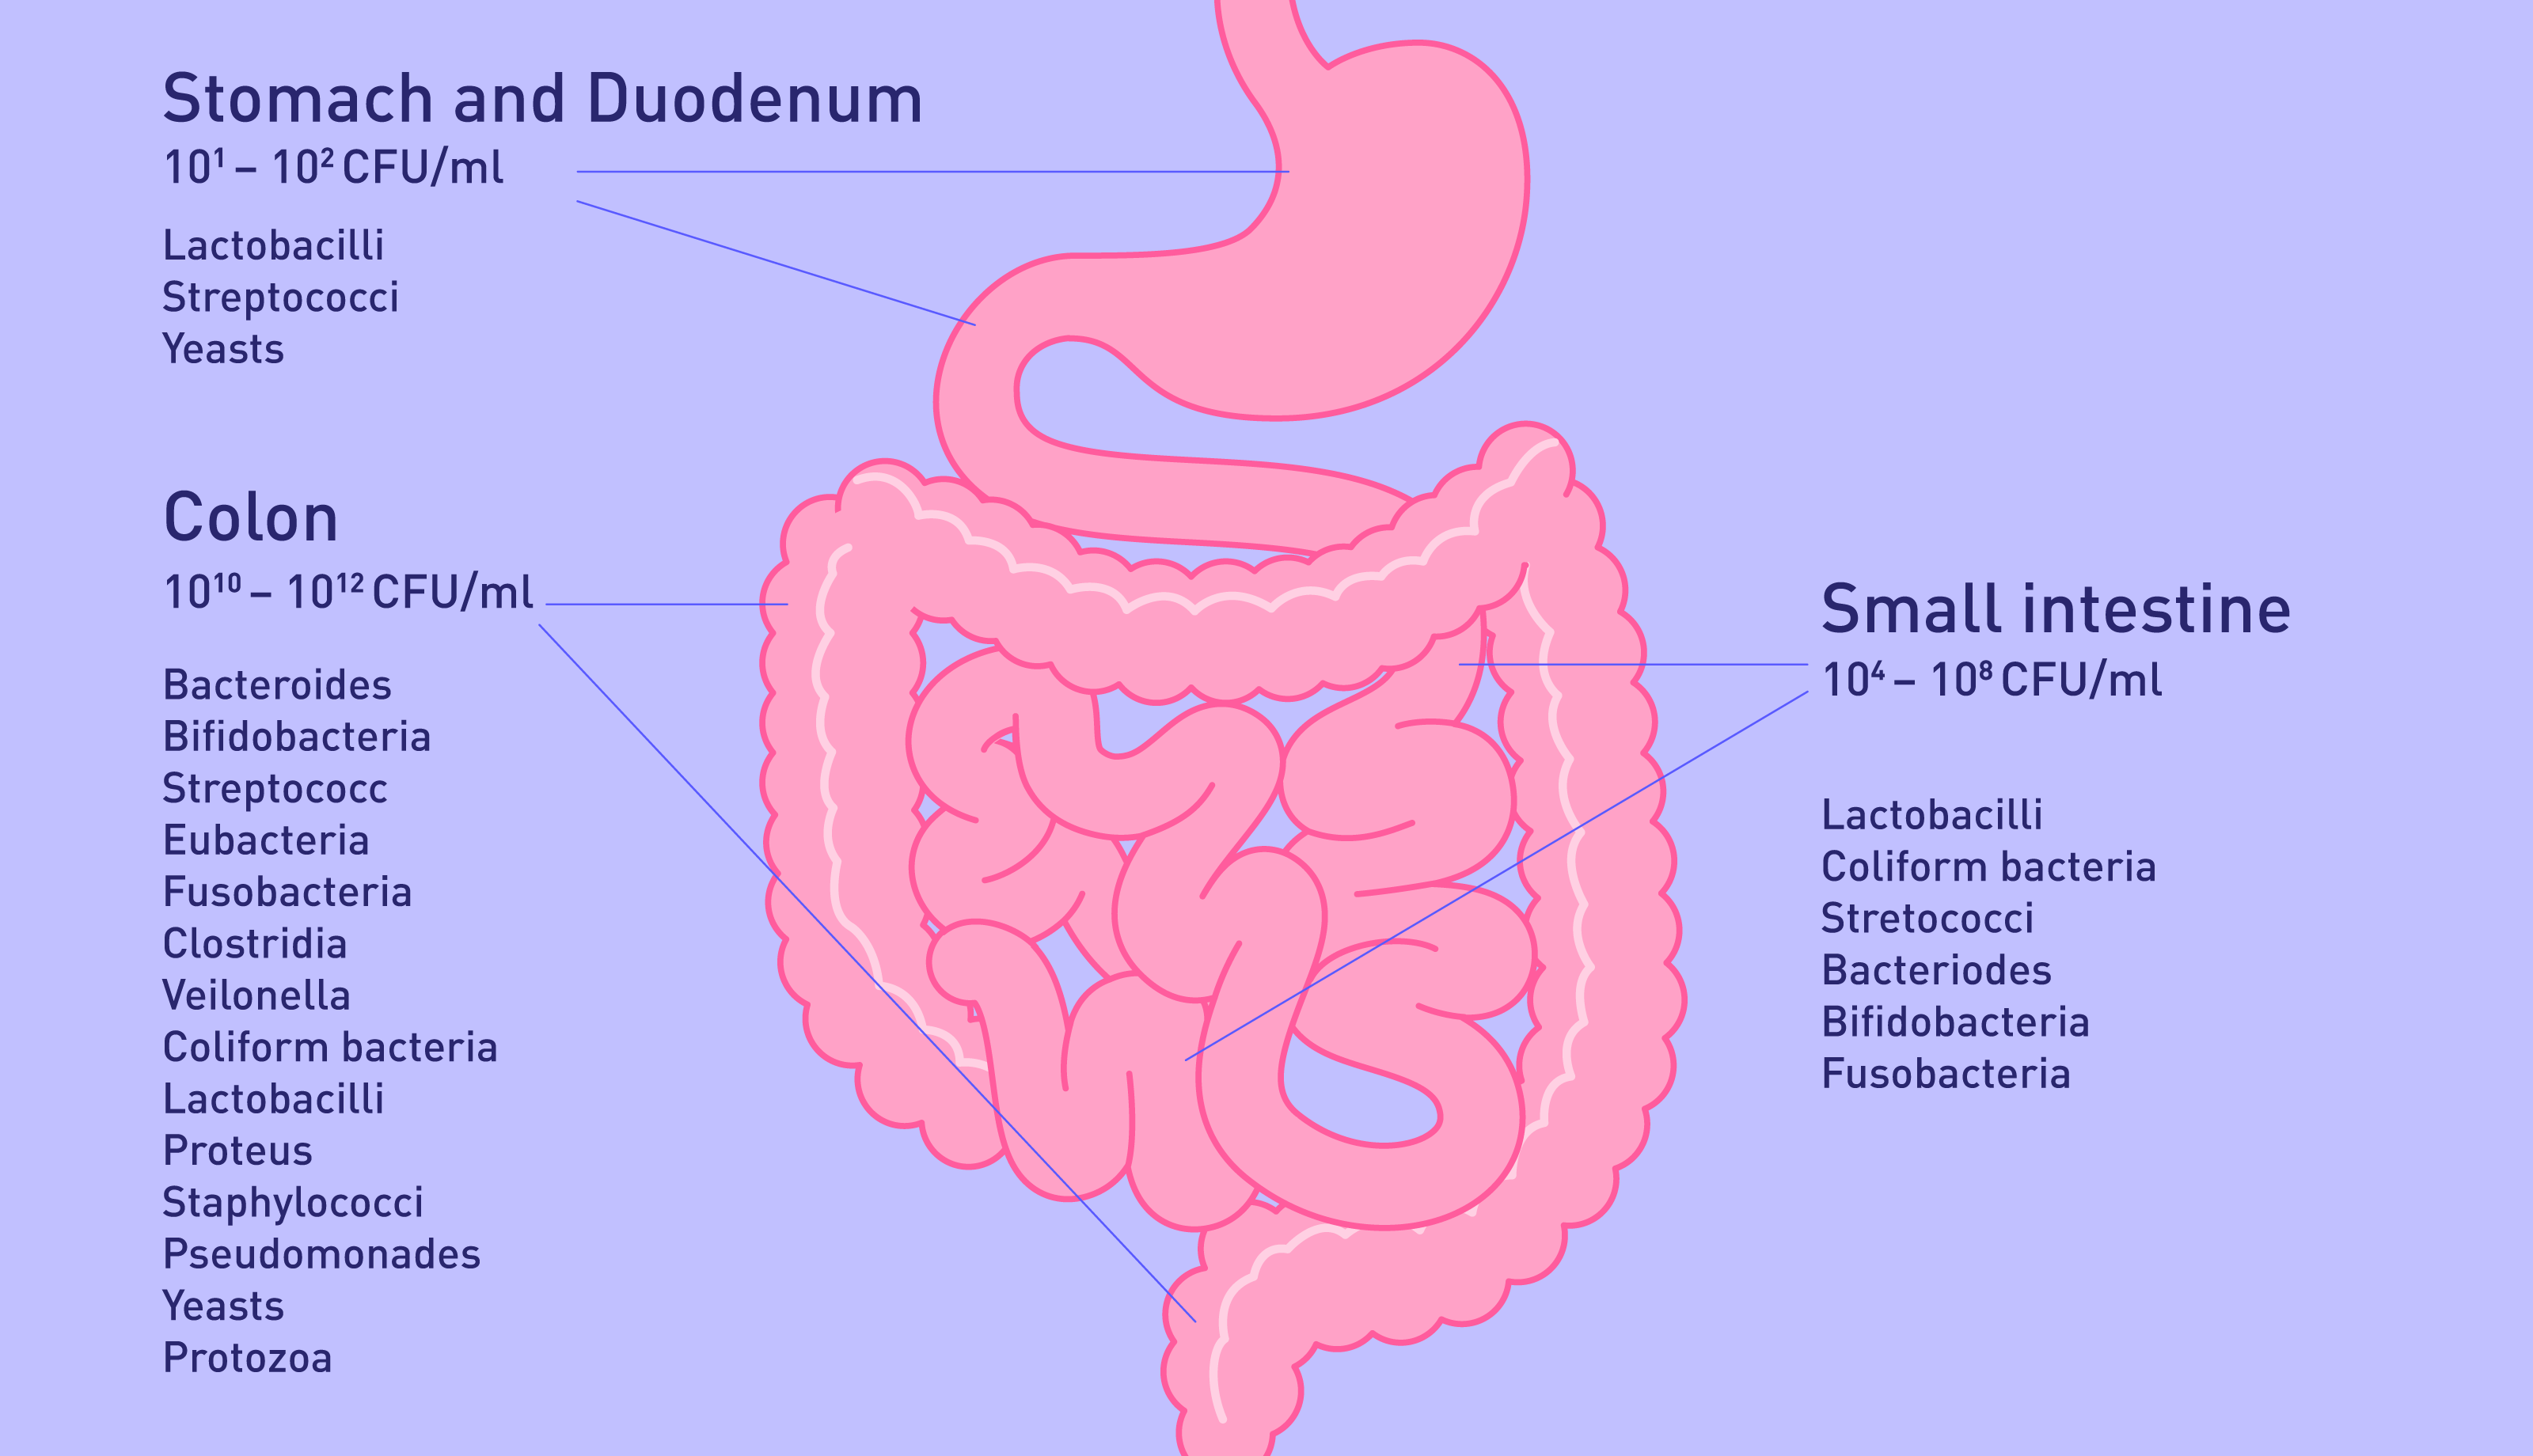 Restoring gut health starts by understanding the bacteria in your digestive tract